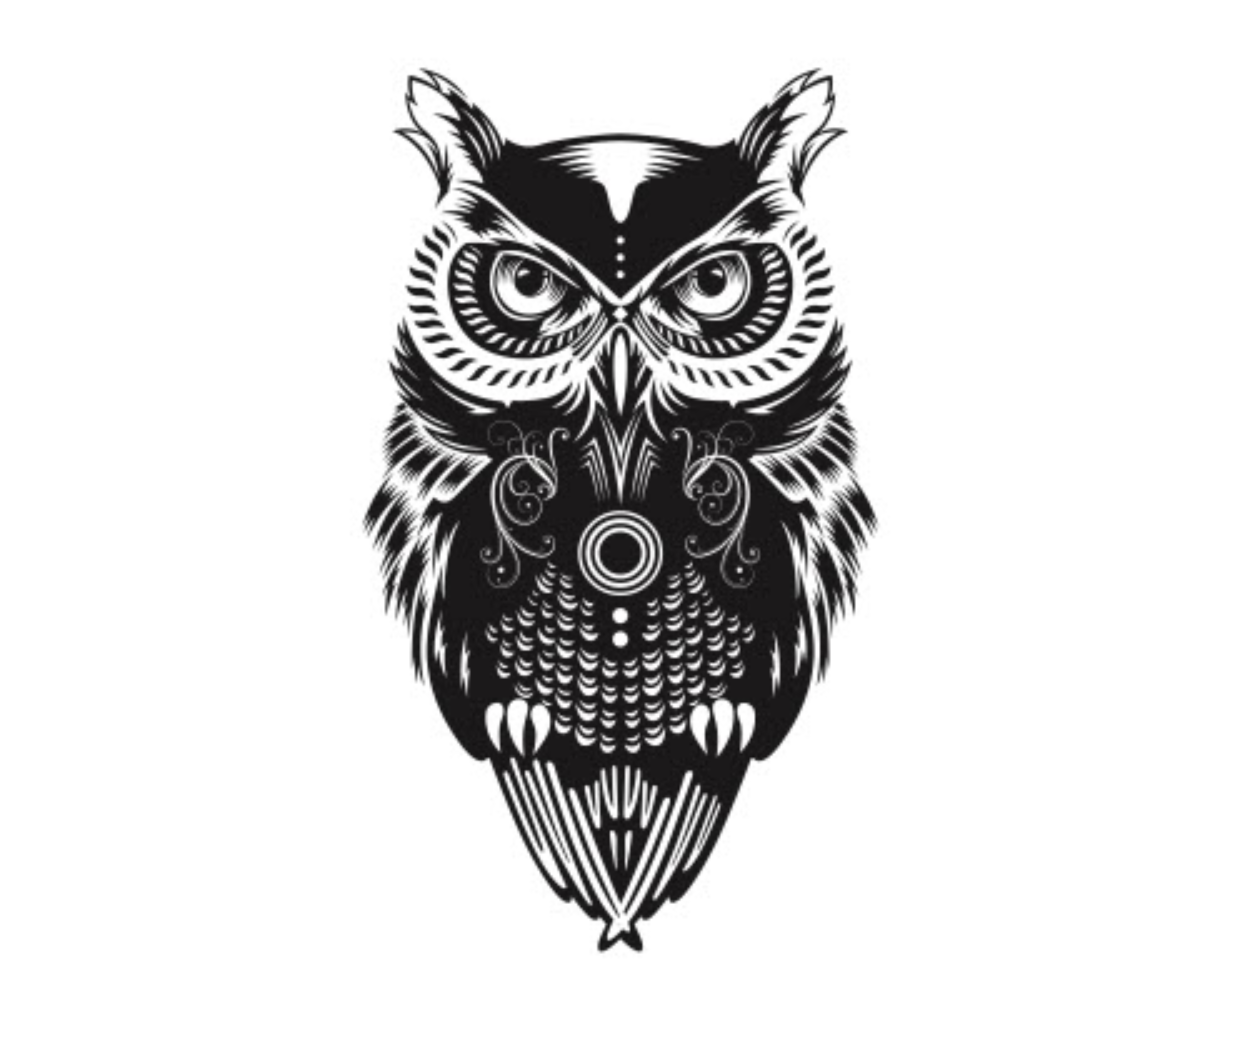 Owl Temporary Tattoos Set Tattoos For Fun